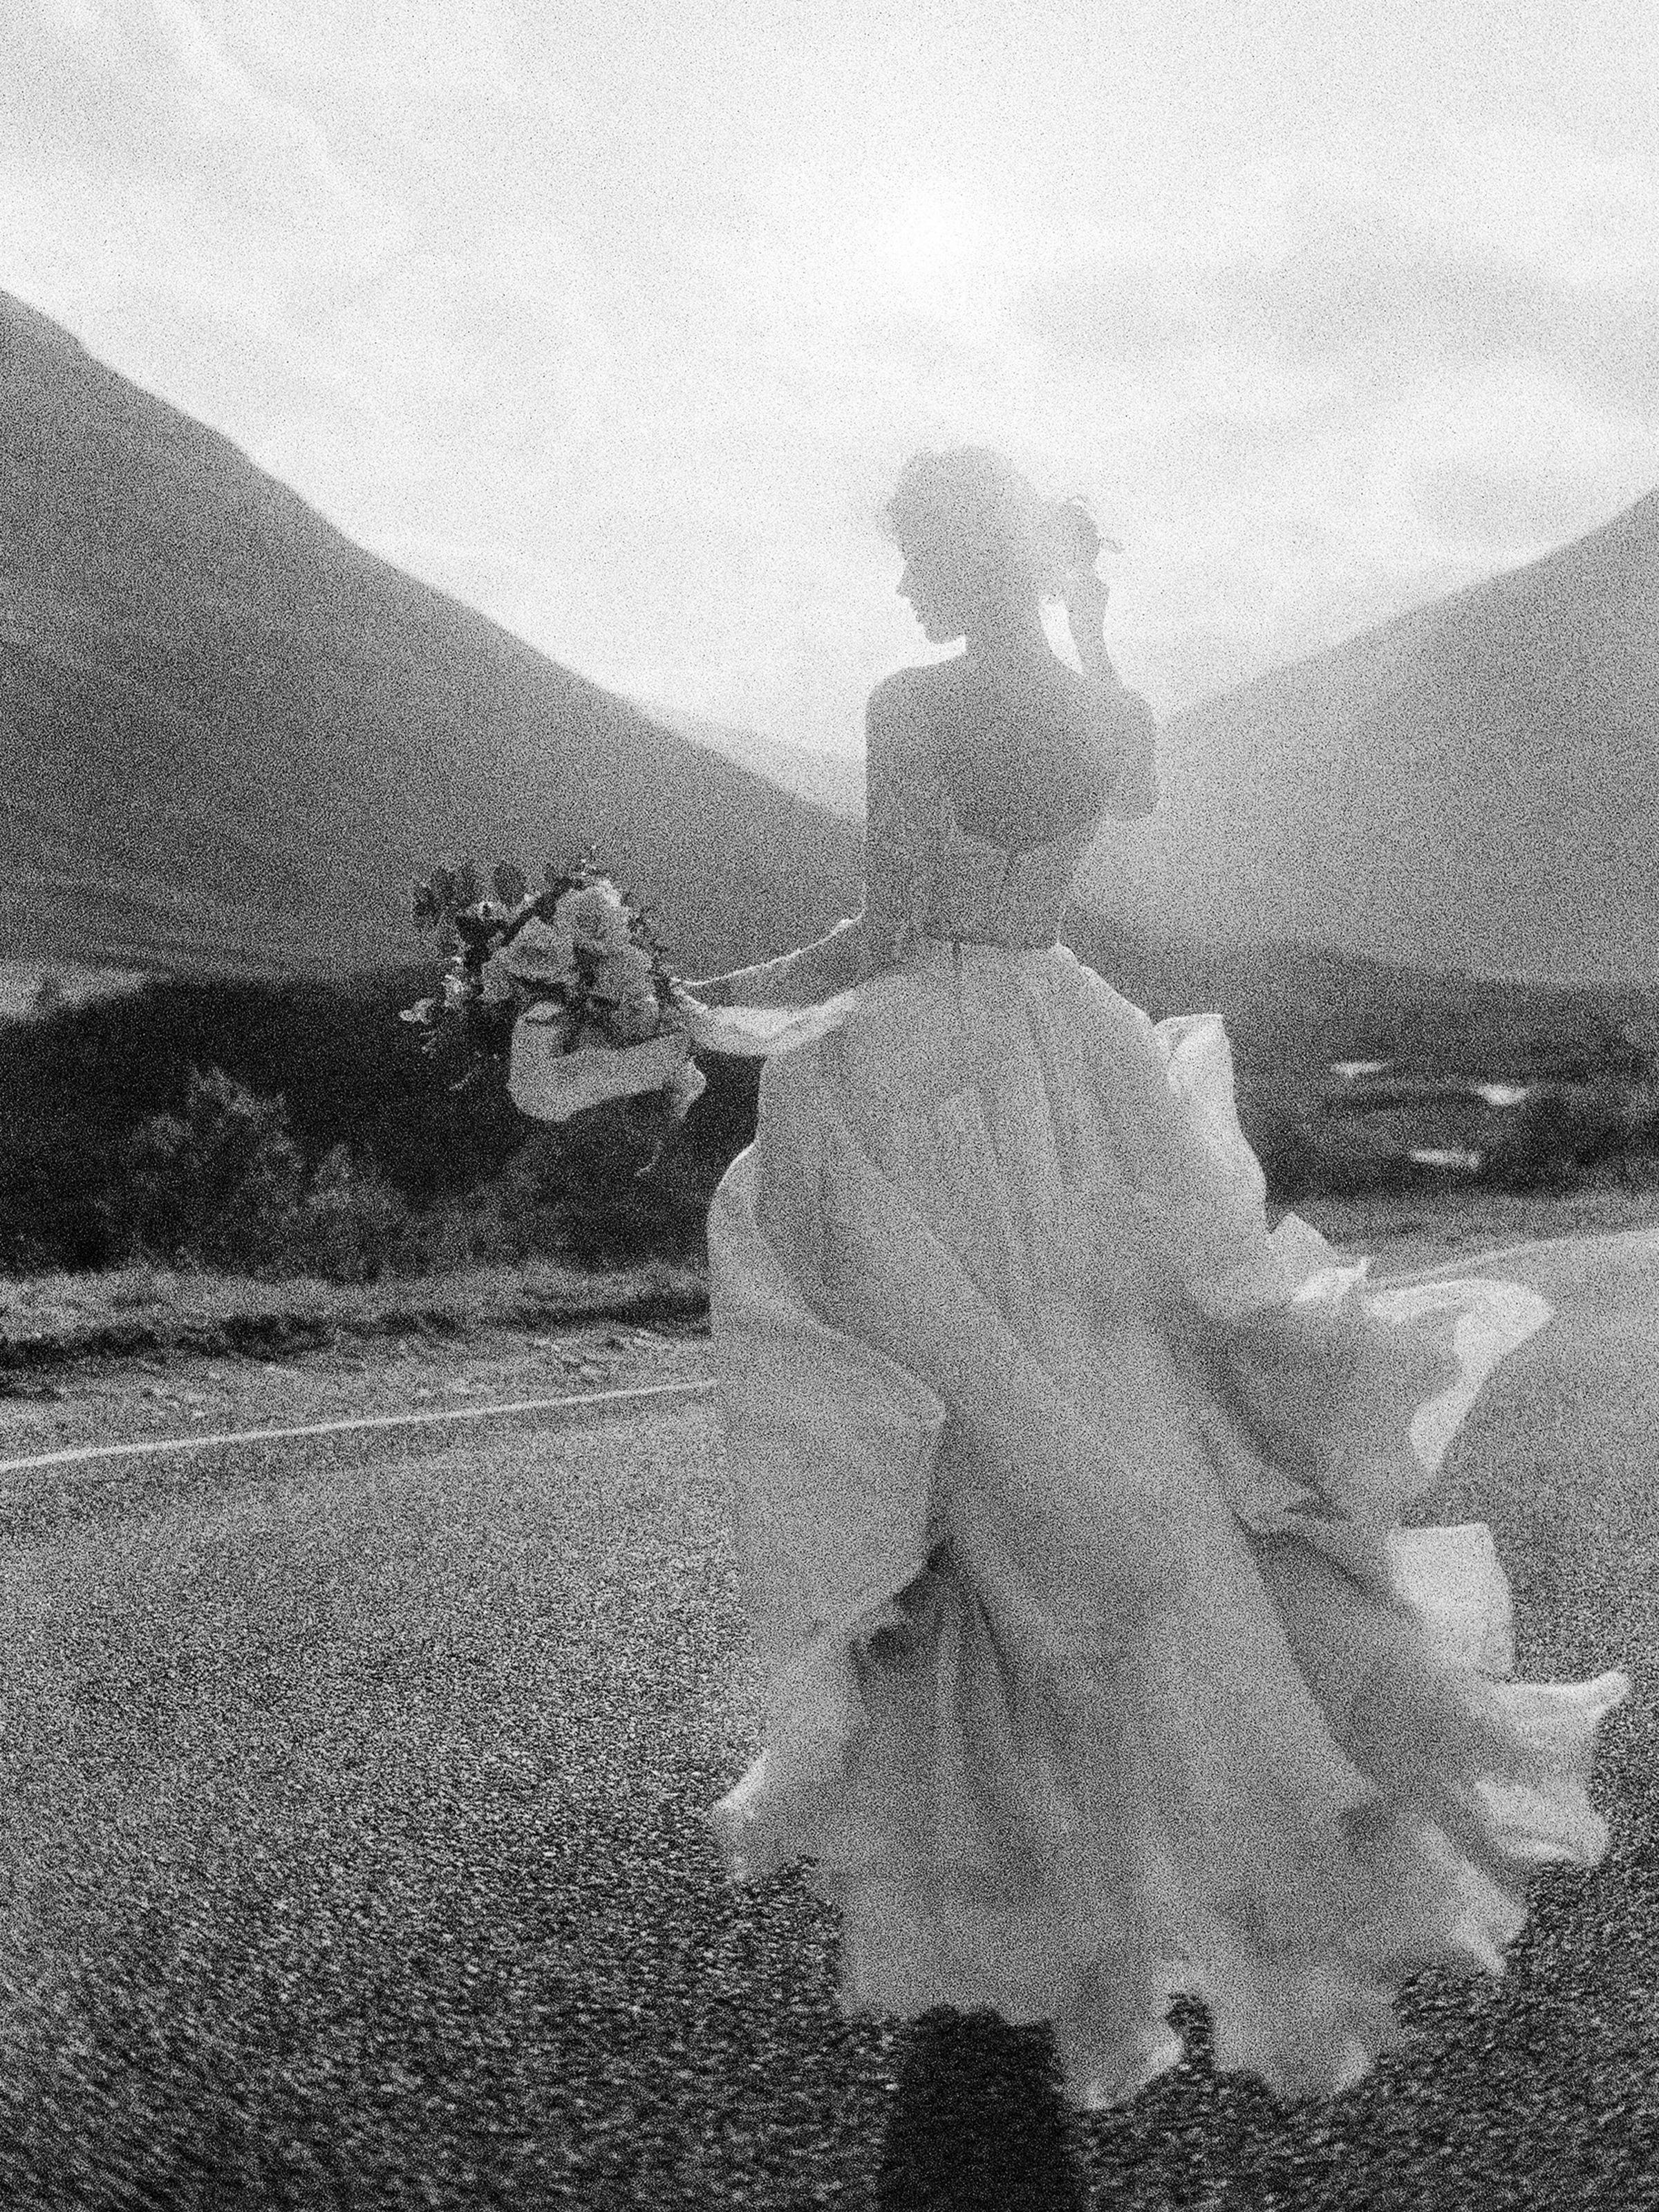 Ethereal back view of bride against mountains - photo by Jen Huang